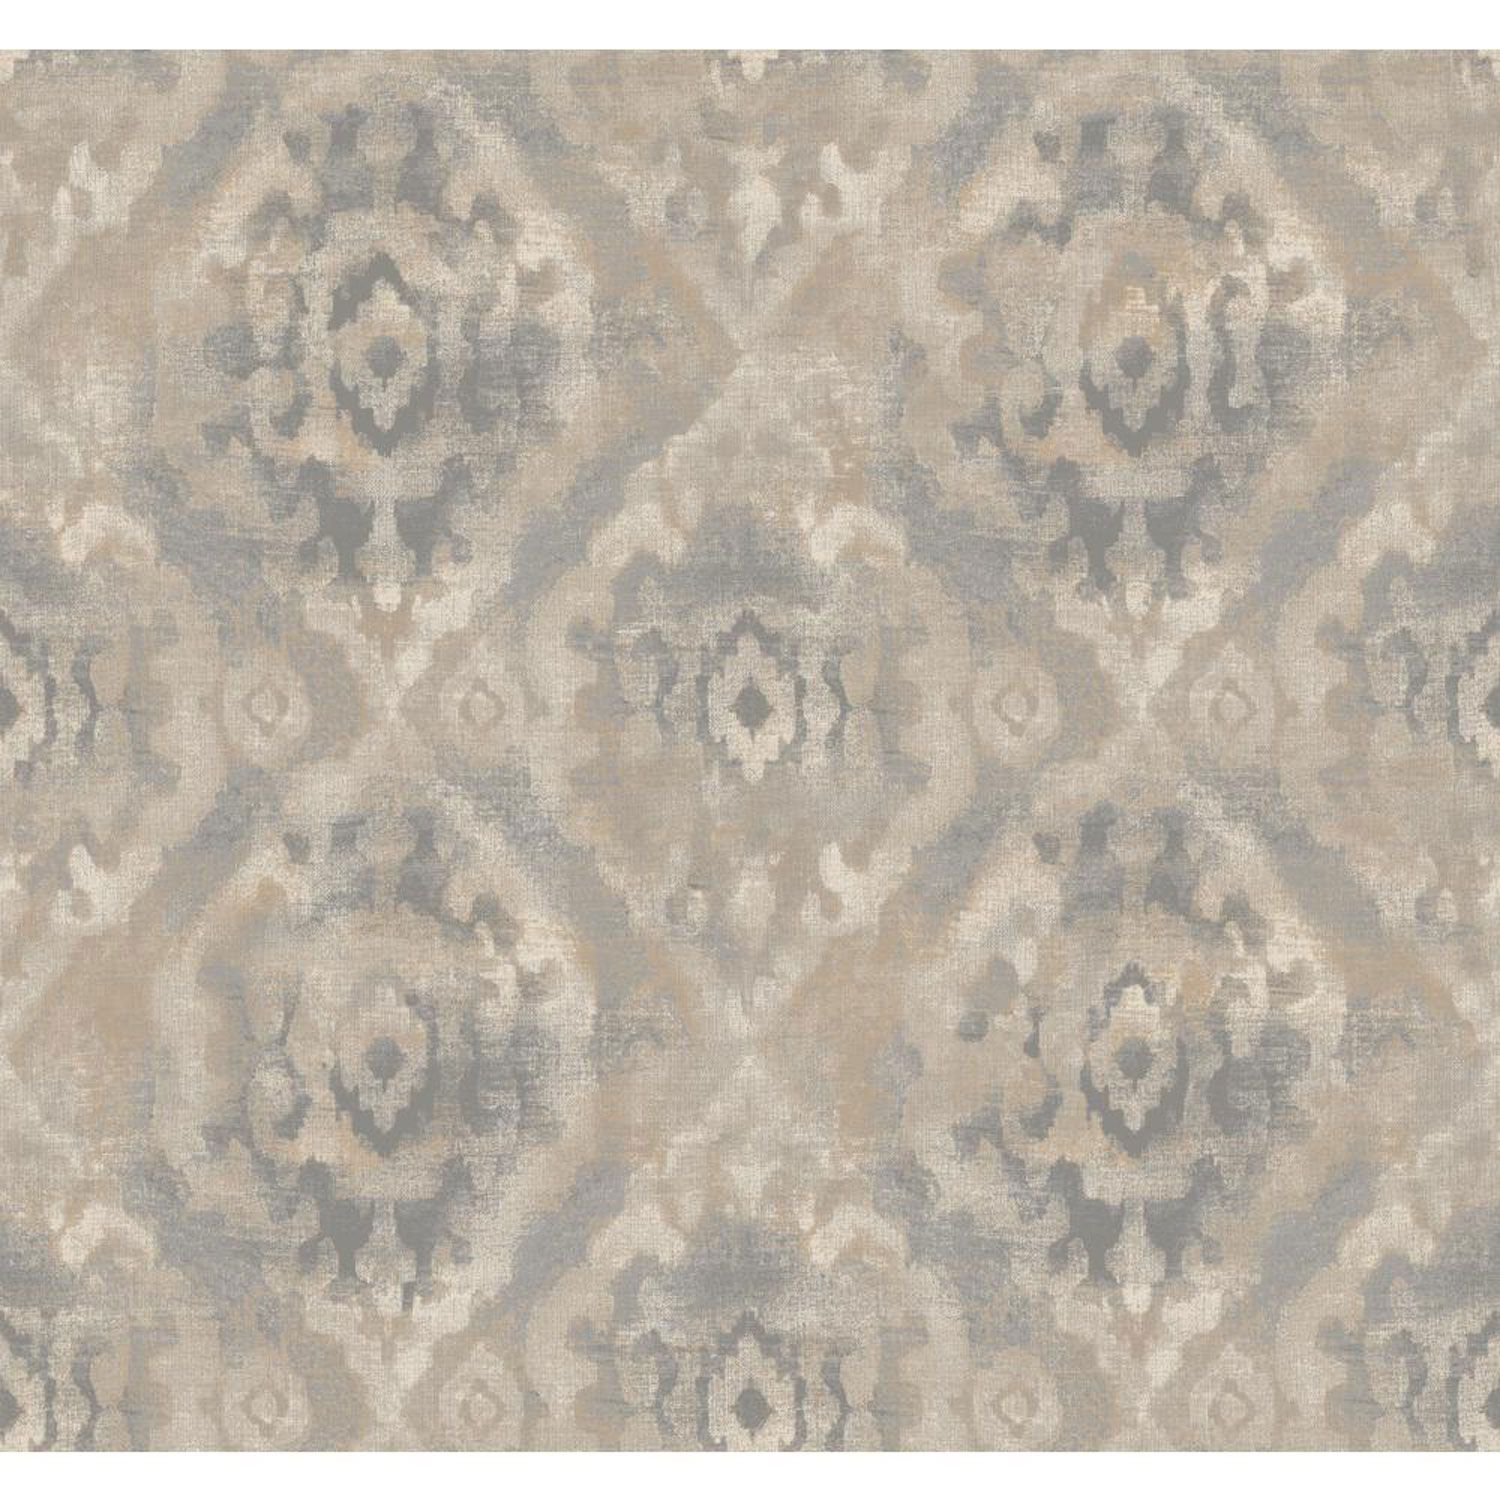 York Wallcoverings Ronald Redding Urban Grey And Beige